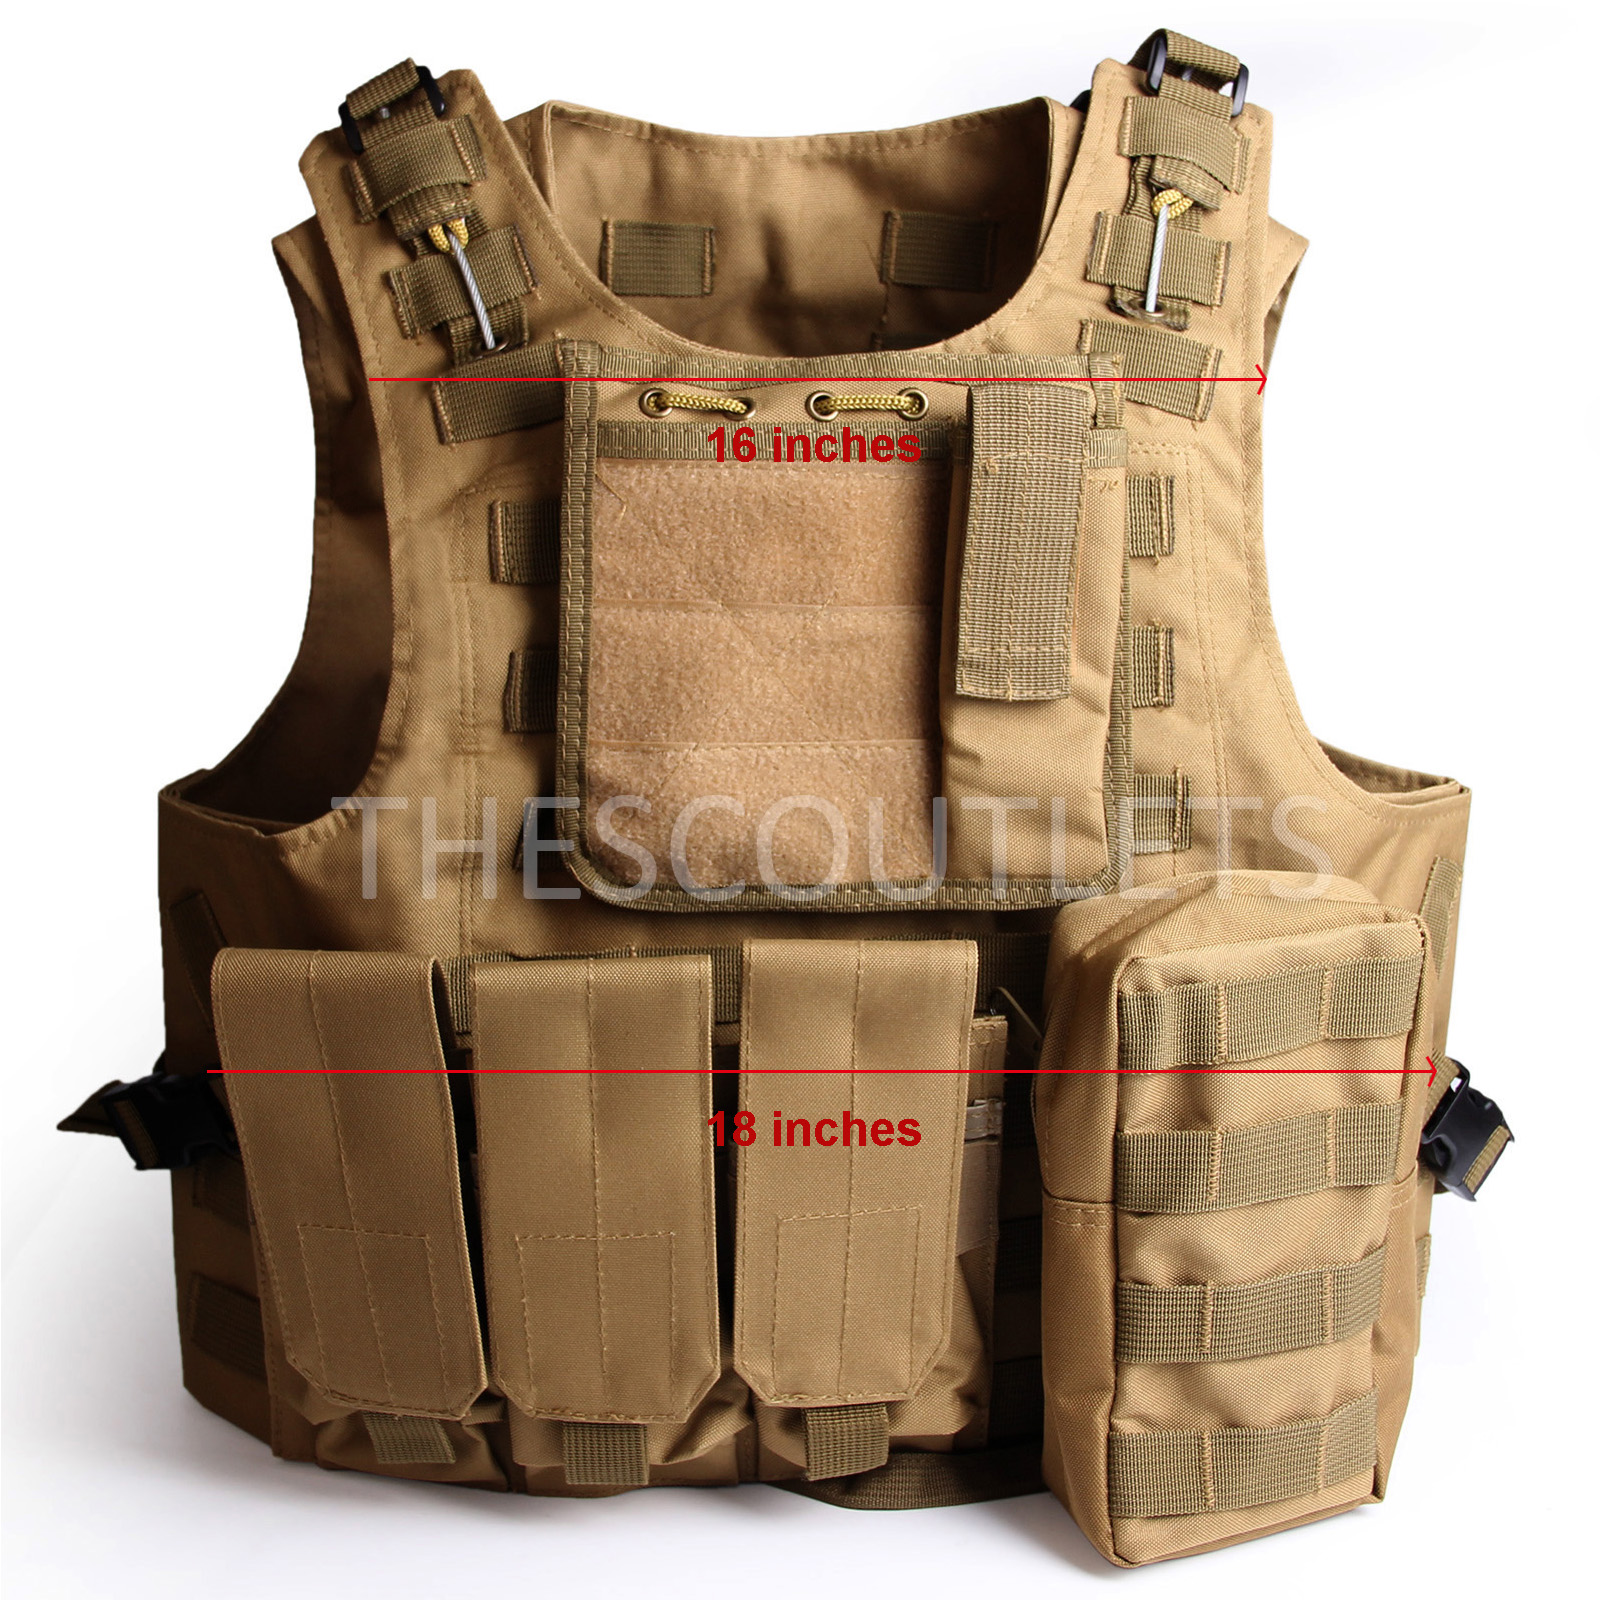 Military-Tactical-Paintball-Army-Molle-Carrier-Adjustable-Airsoft-Combat-Vest thumbnail 22